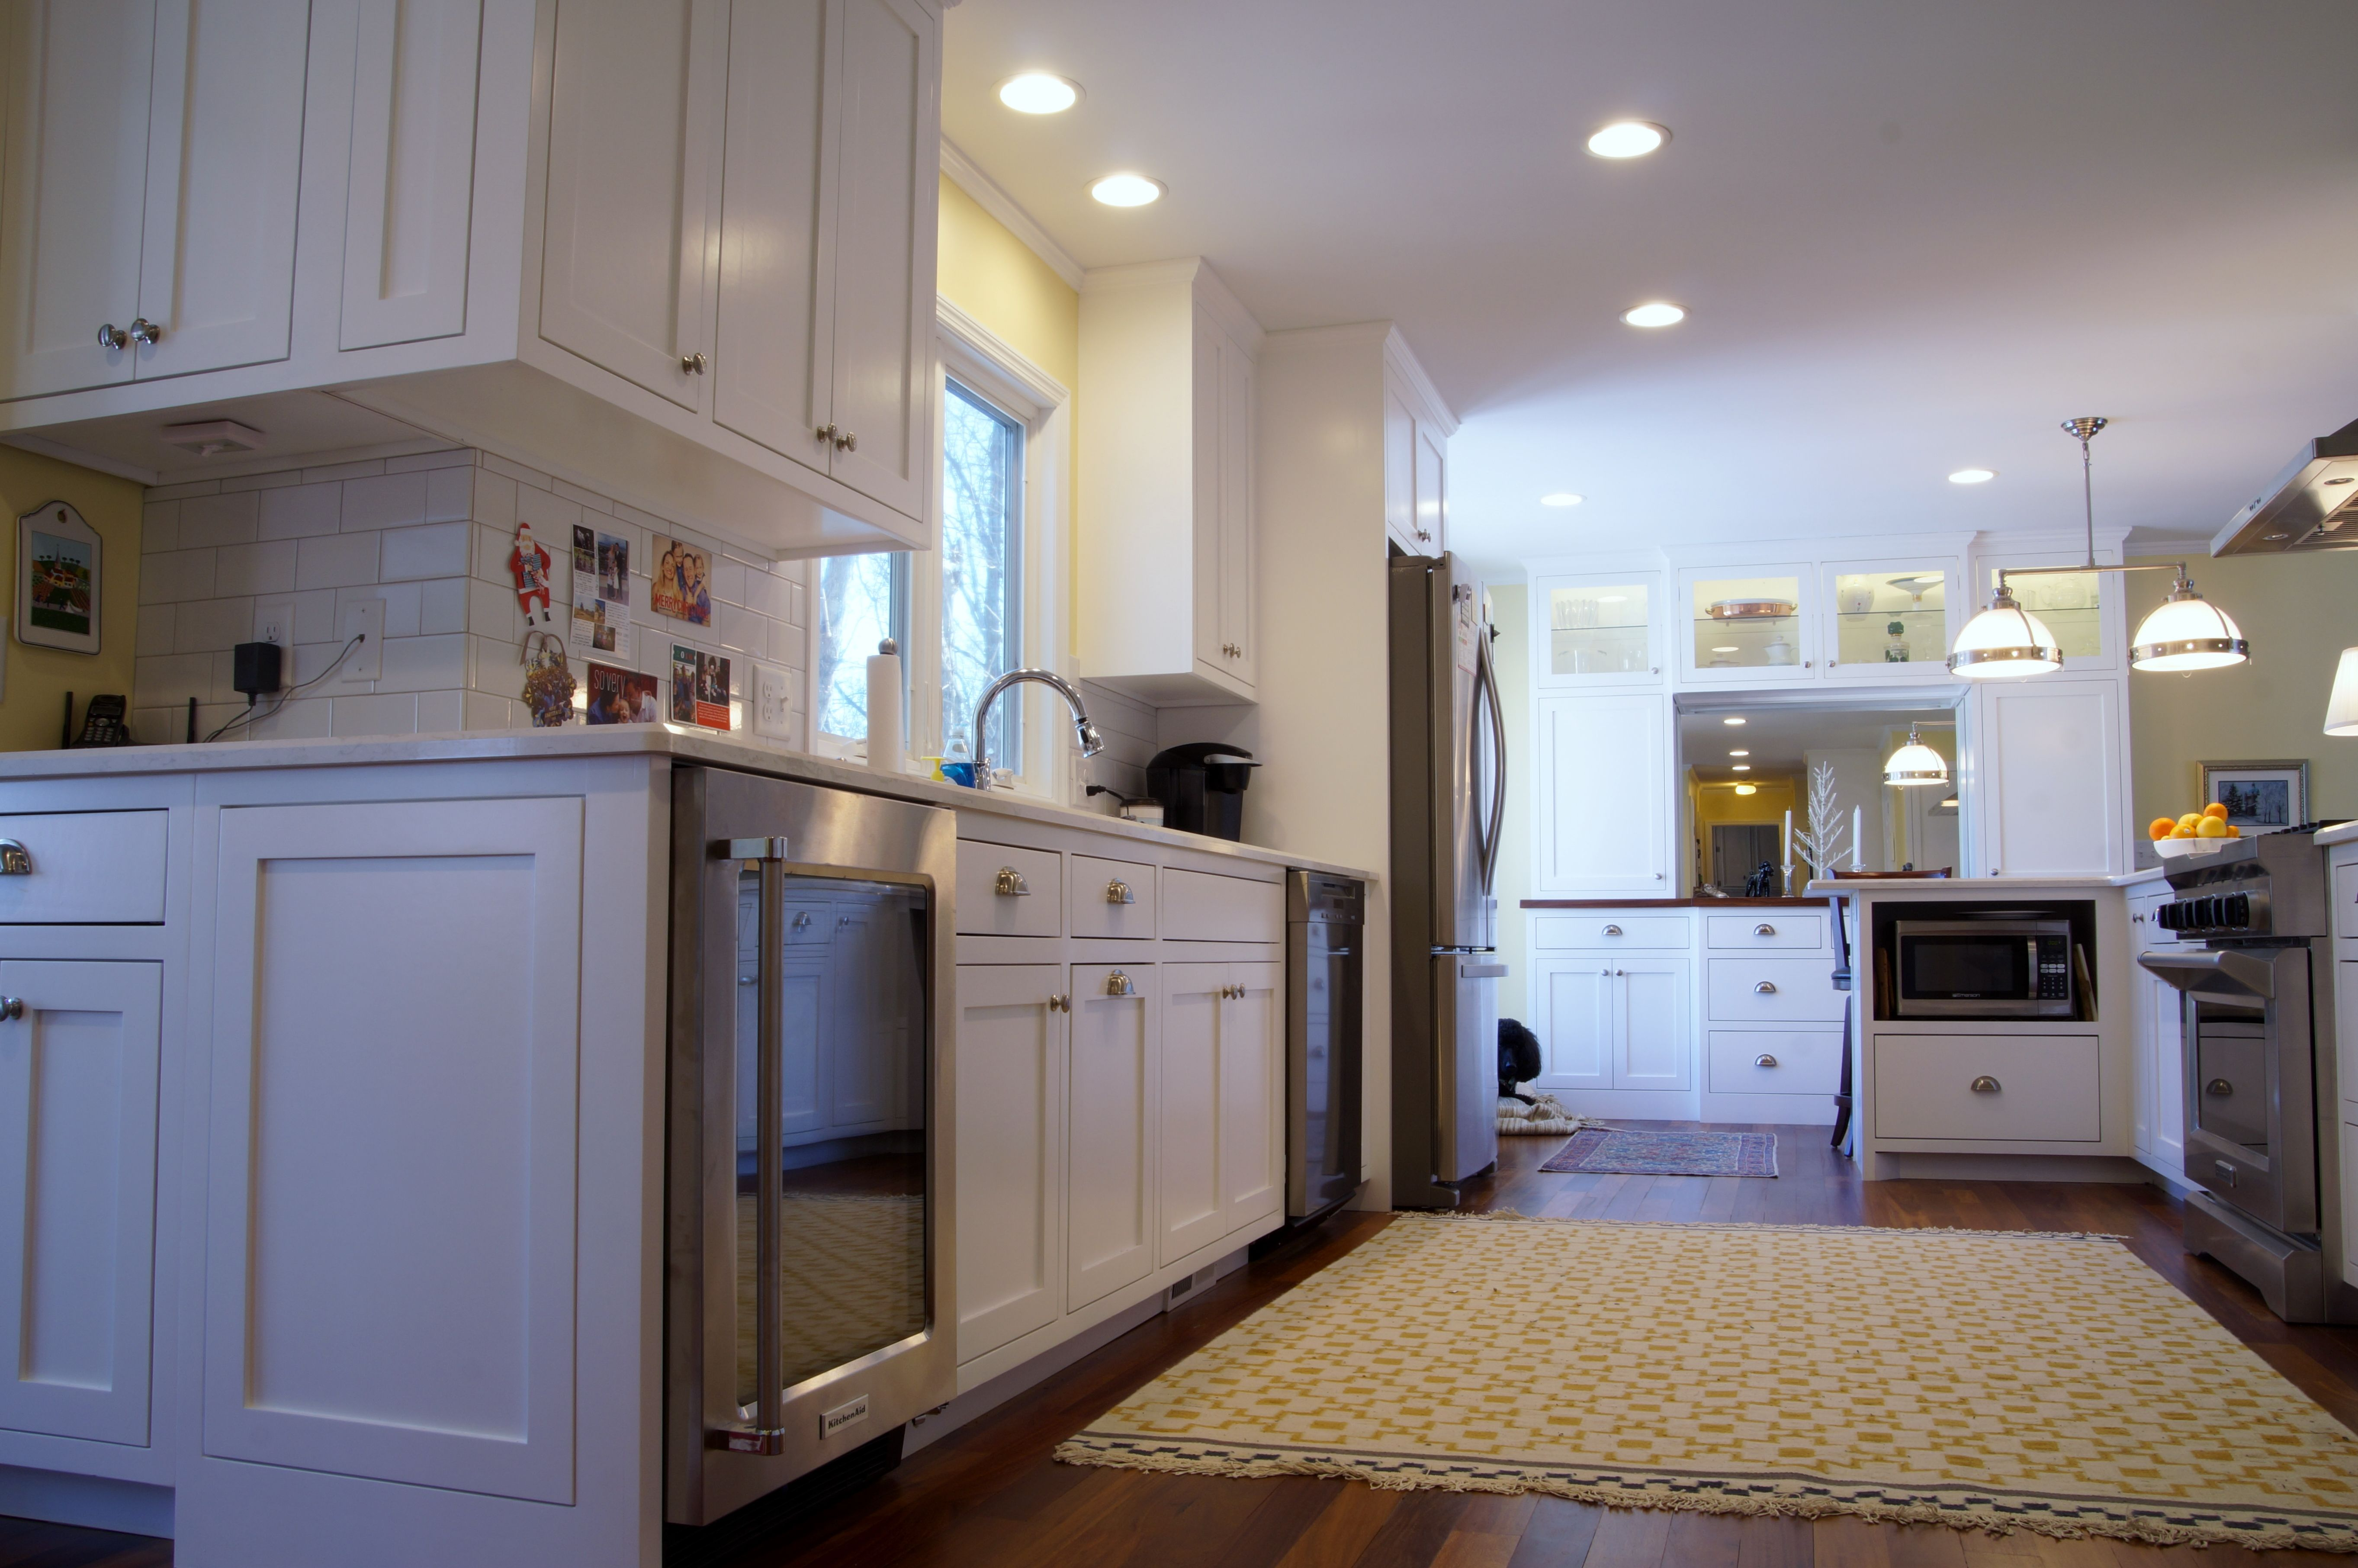 Updates to this Twin Cites kitchen included stainless steel